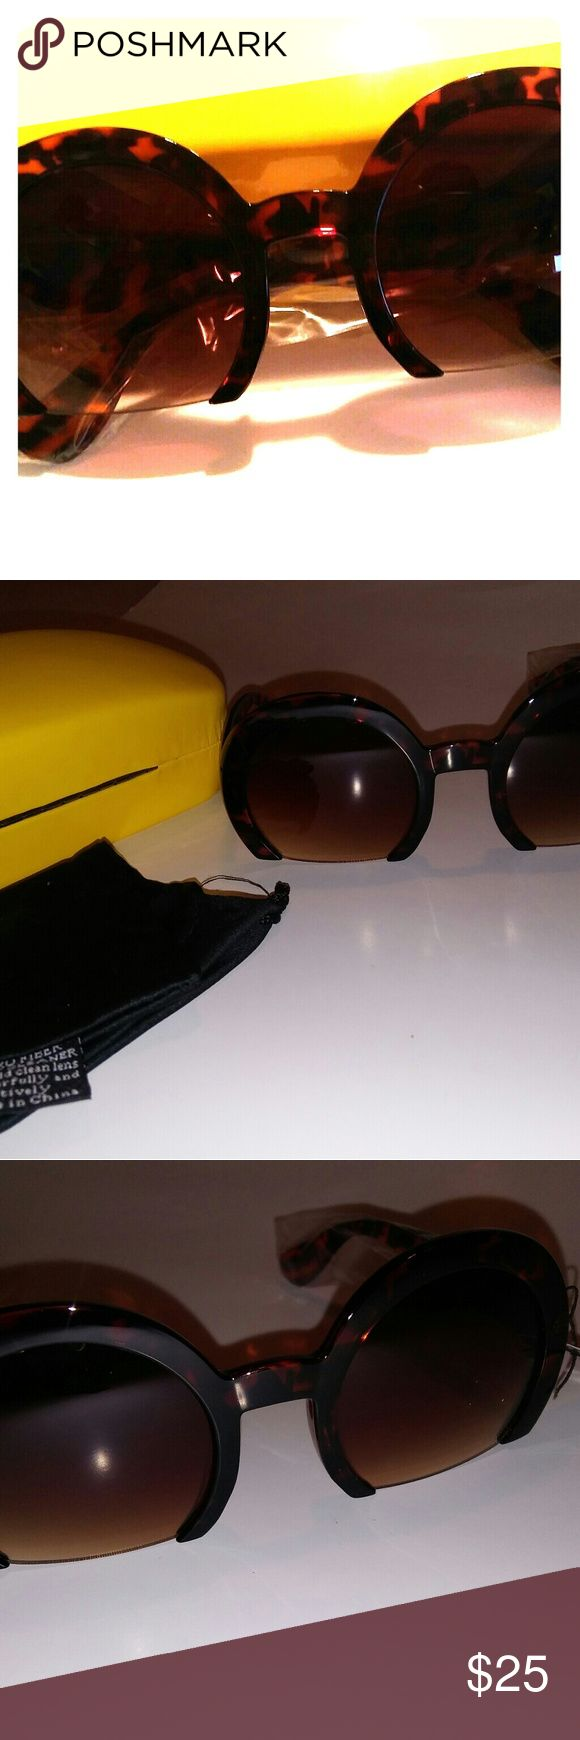 Sunglasses Fashion forward trending style.  Animal print half lens sunglasses.  Up to 100% UVB & UVA protection. Comes with case and pouch for protection.  Case color may vary. Pouch works as lens cleaner. Accessories Glasses